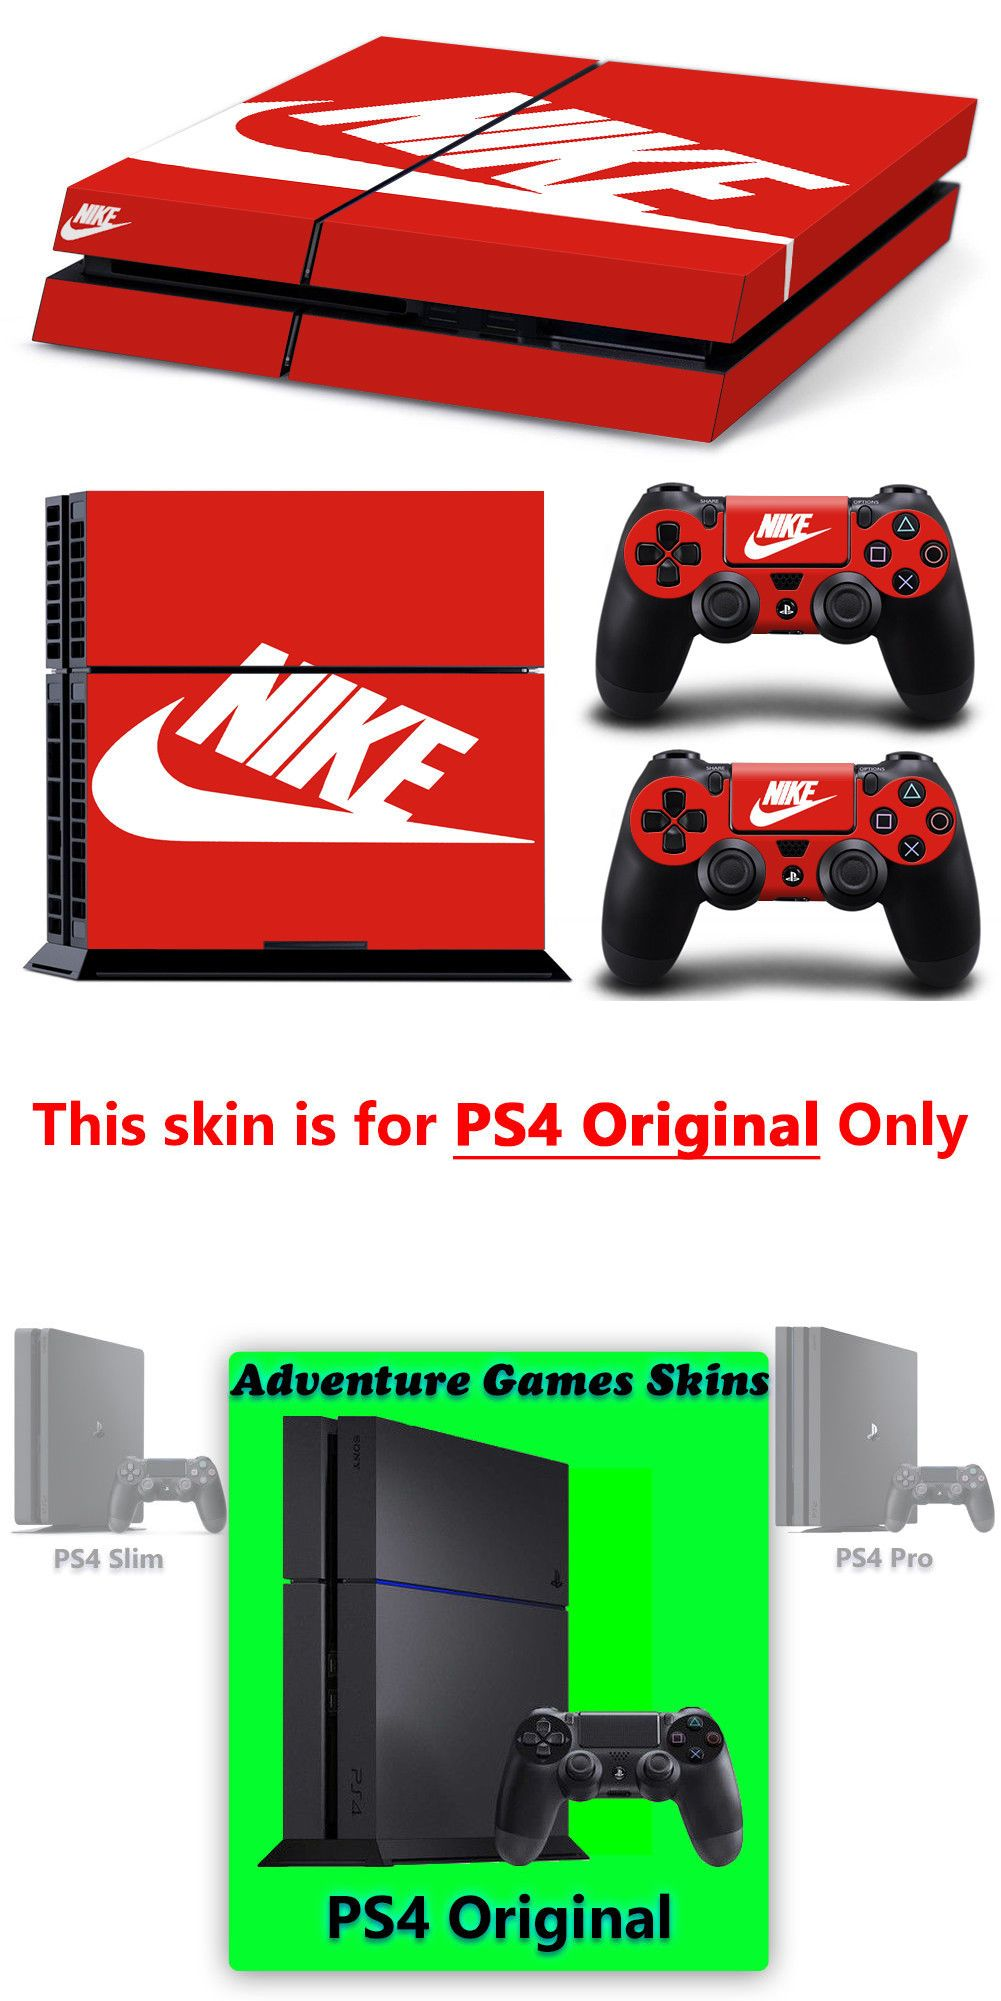 ba26221875f7d Faceplates Decals and Stickers 171668: Ps4 Original - Nike Vinyl ...